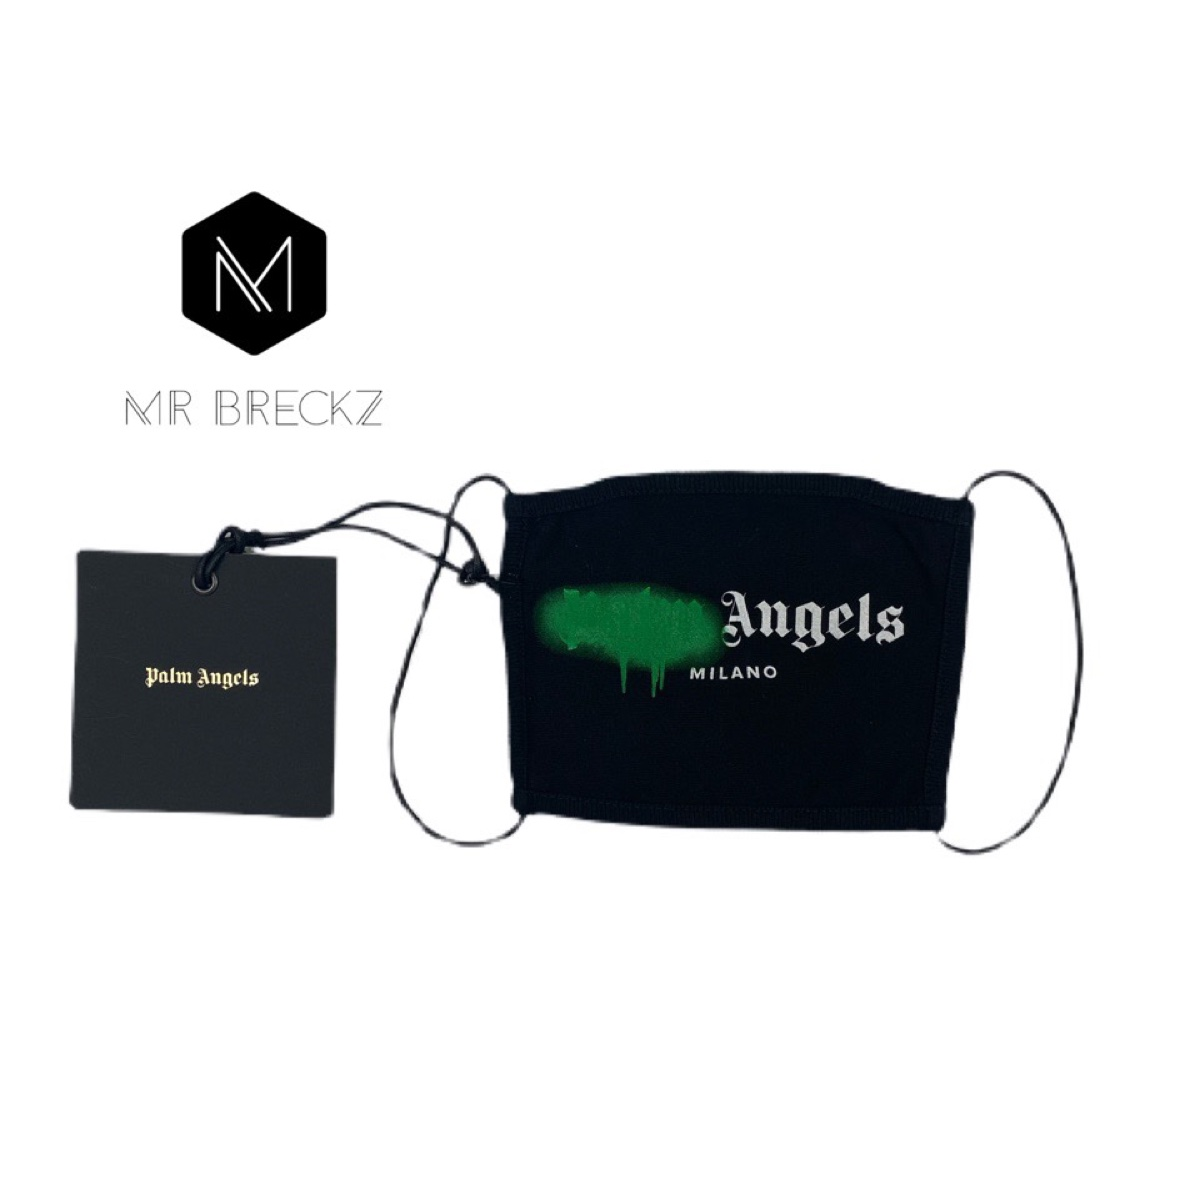 Authentic palm angels green spray paint face mask